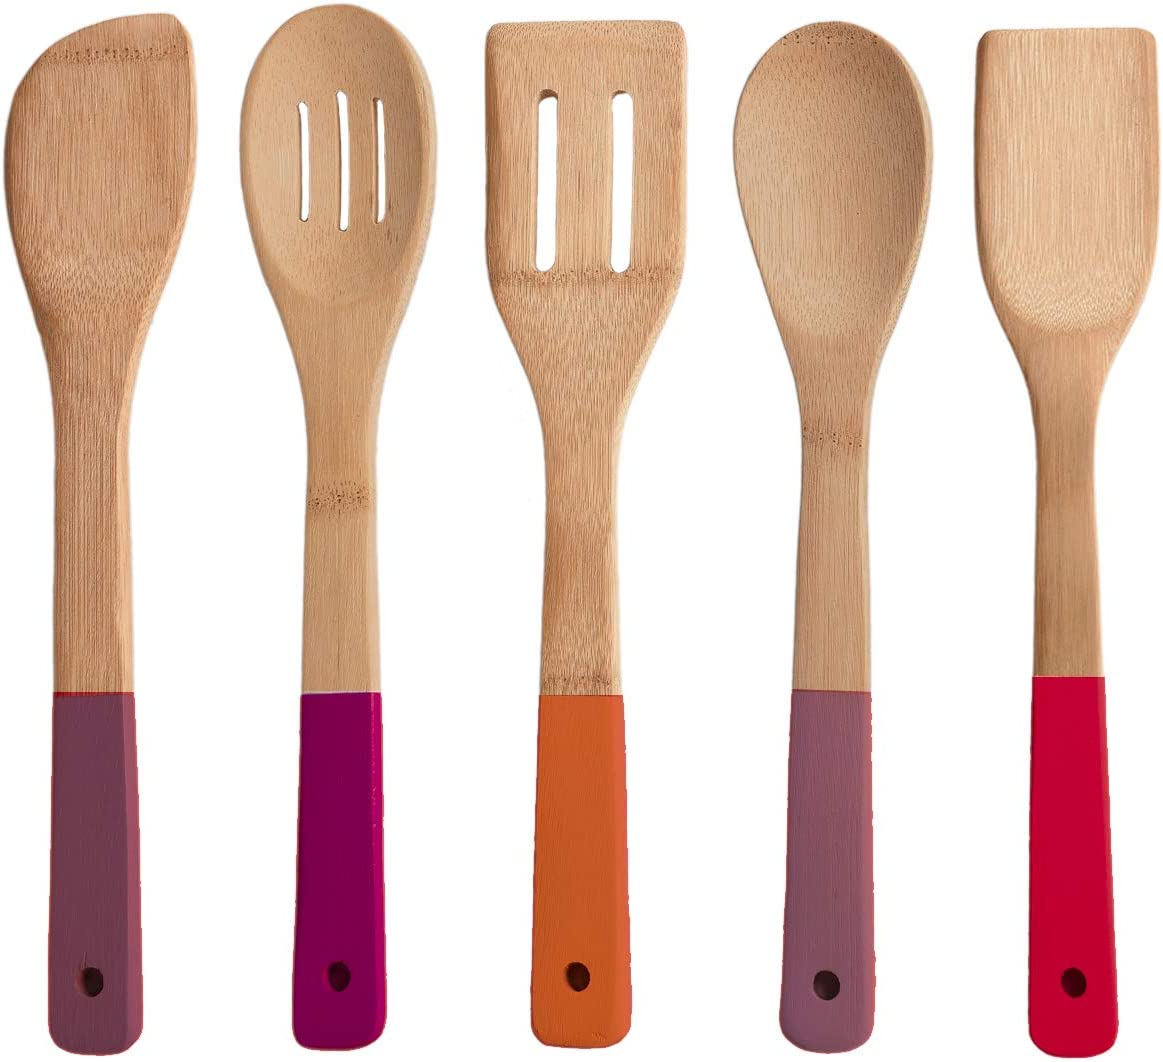 Wooden Spoons And Cooking Utensils With Colorful Silicone Handles Nonstick Spatula Turner Mixing Forked And Slotted